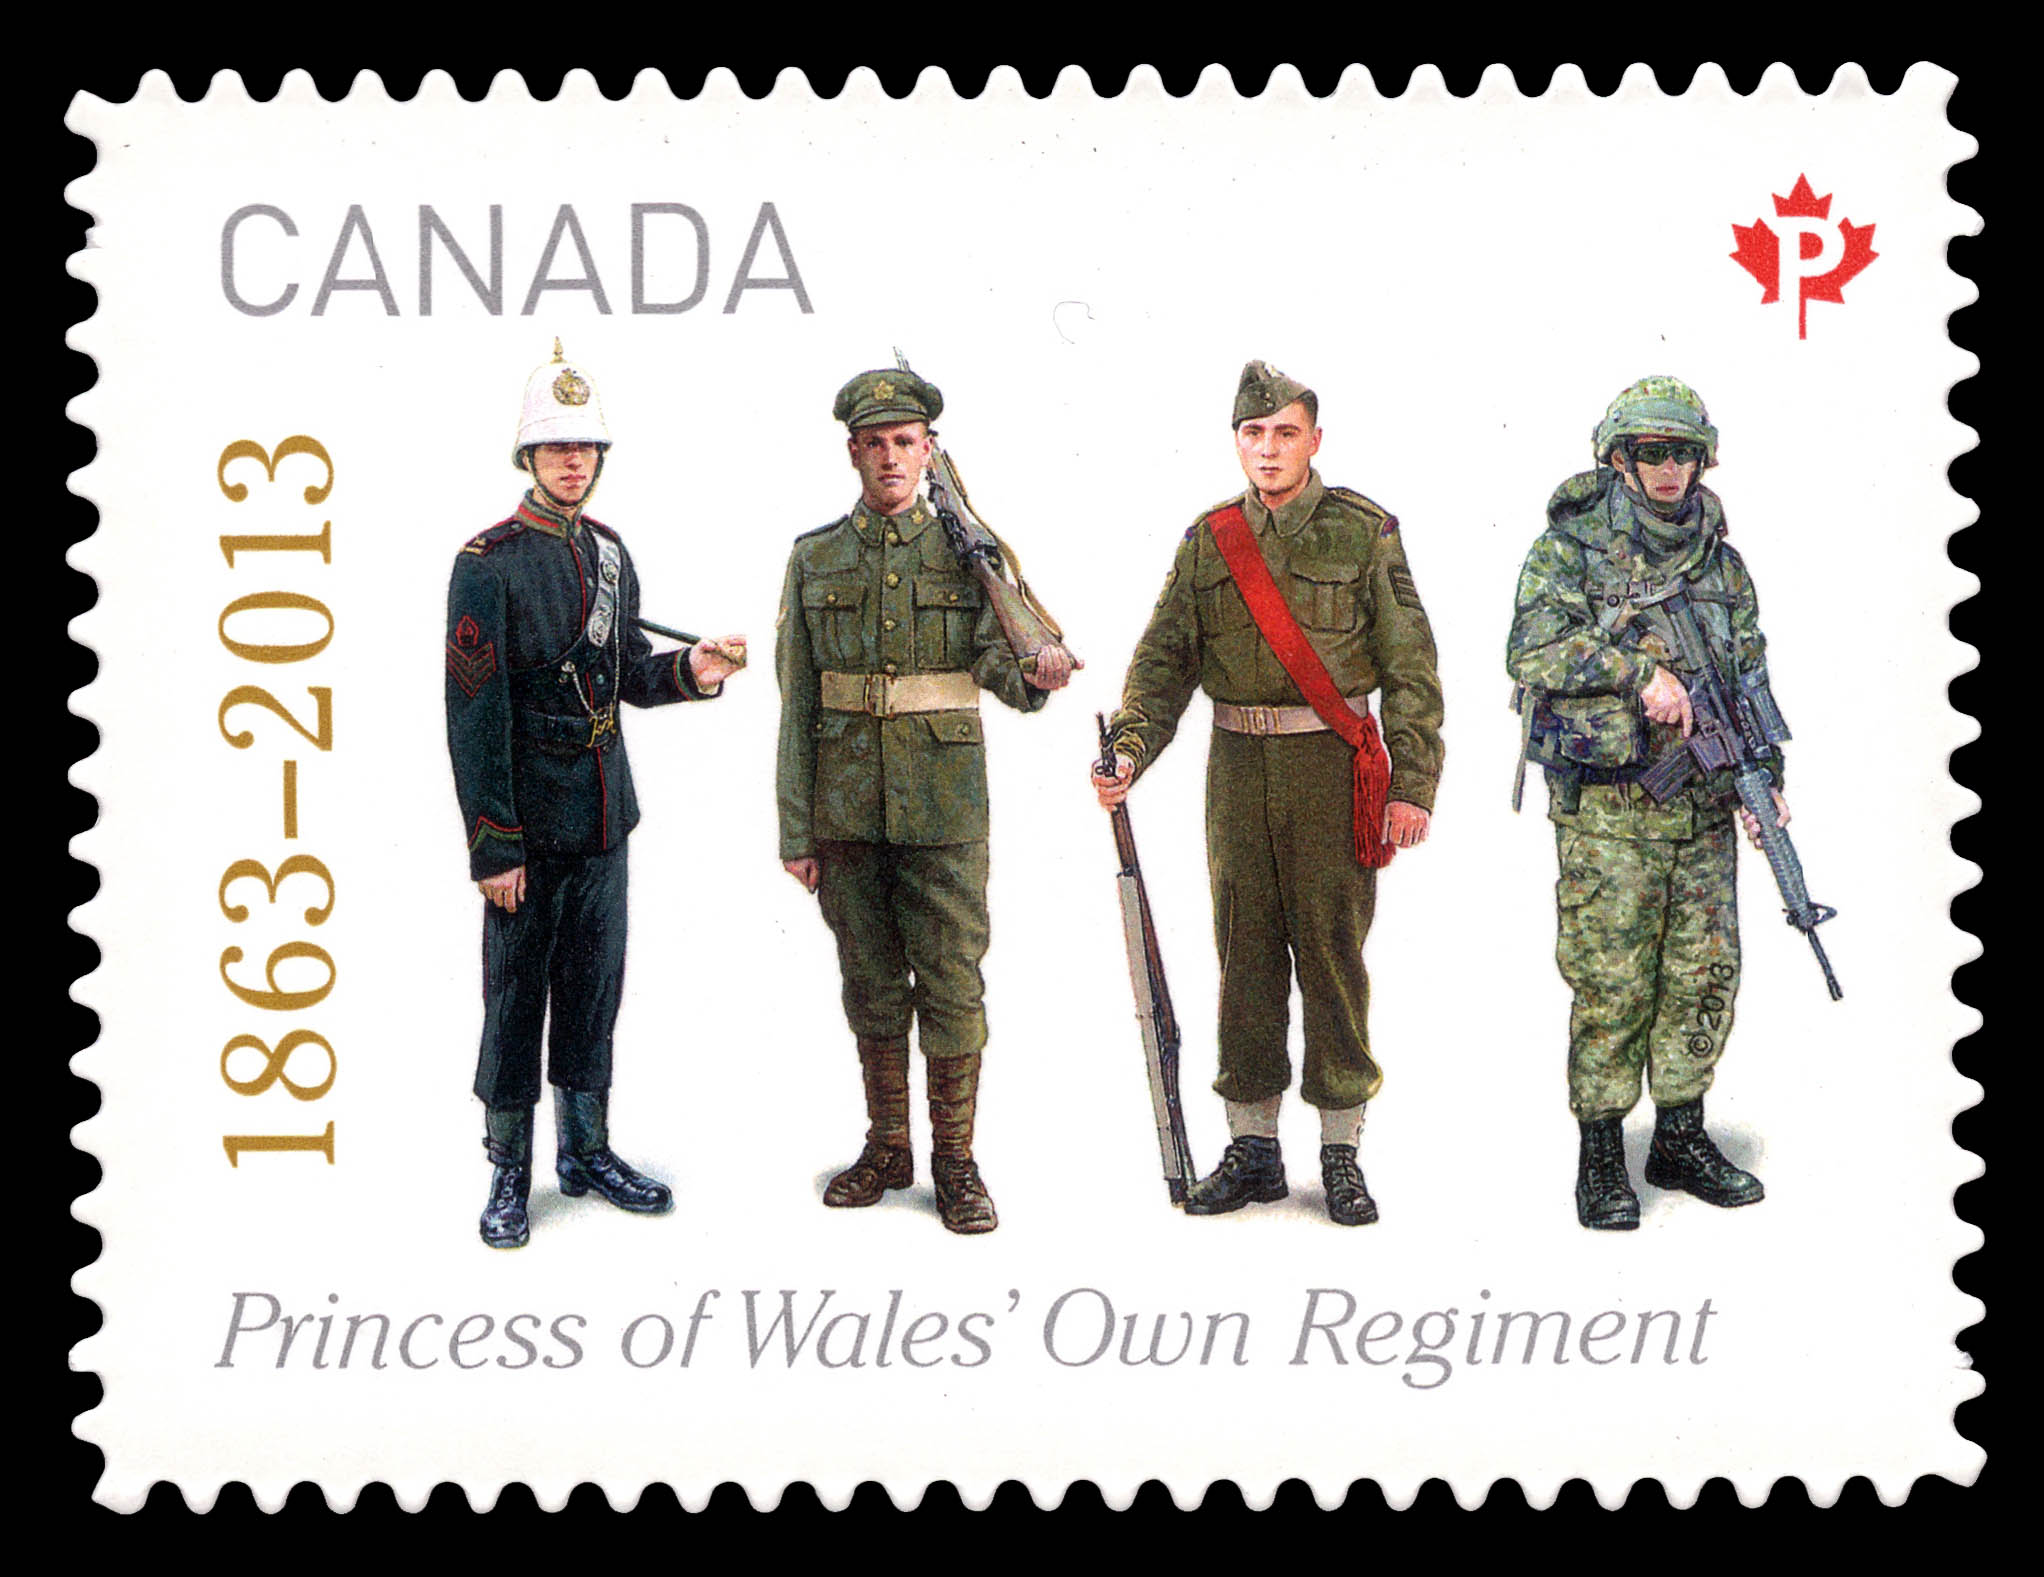 The Princess ofWales' OwnRegiment Canada Postage Stamp | The Regiments